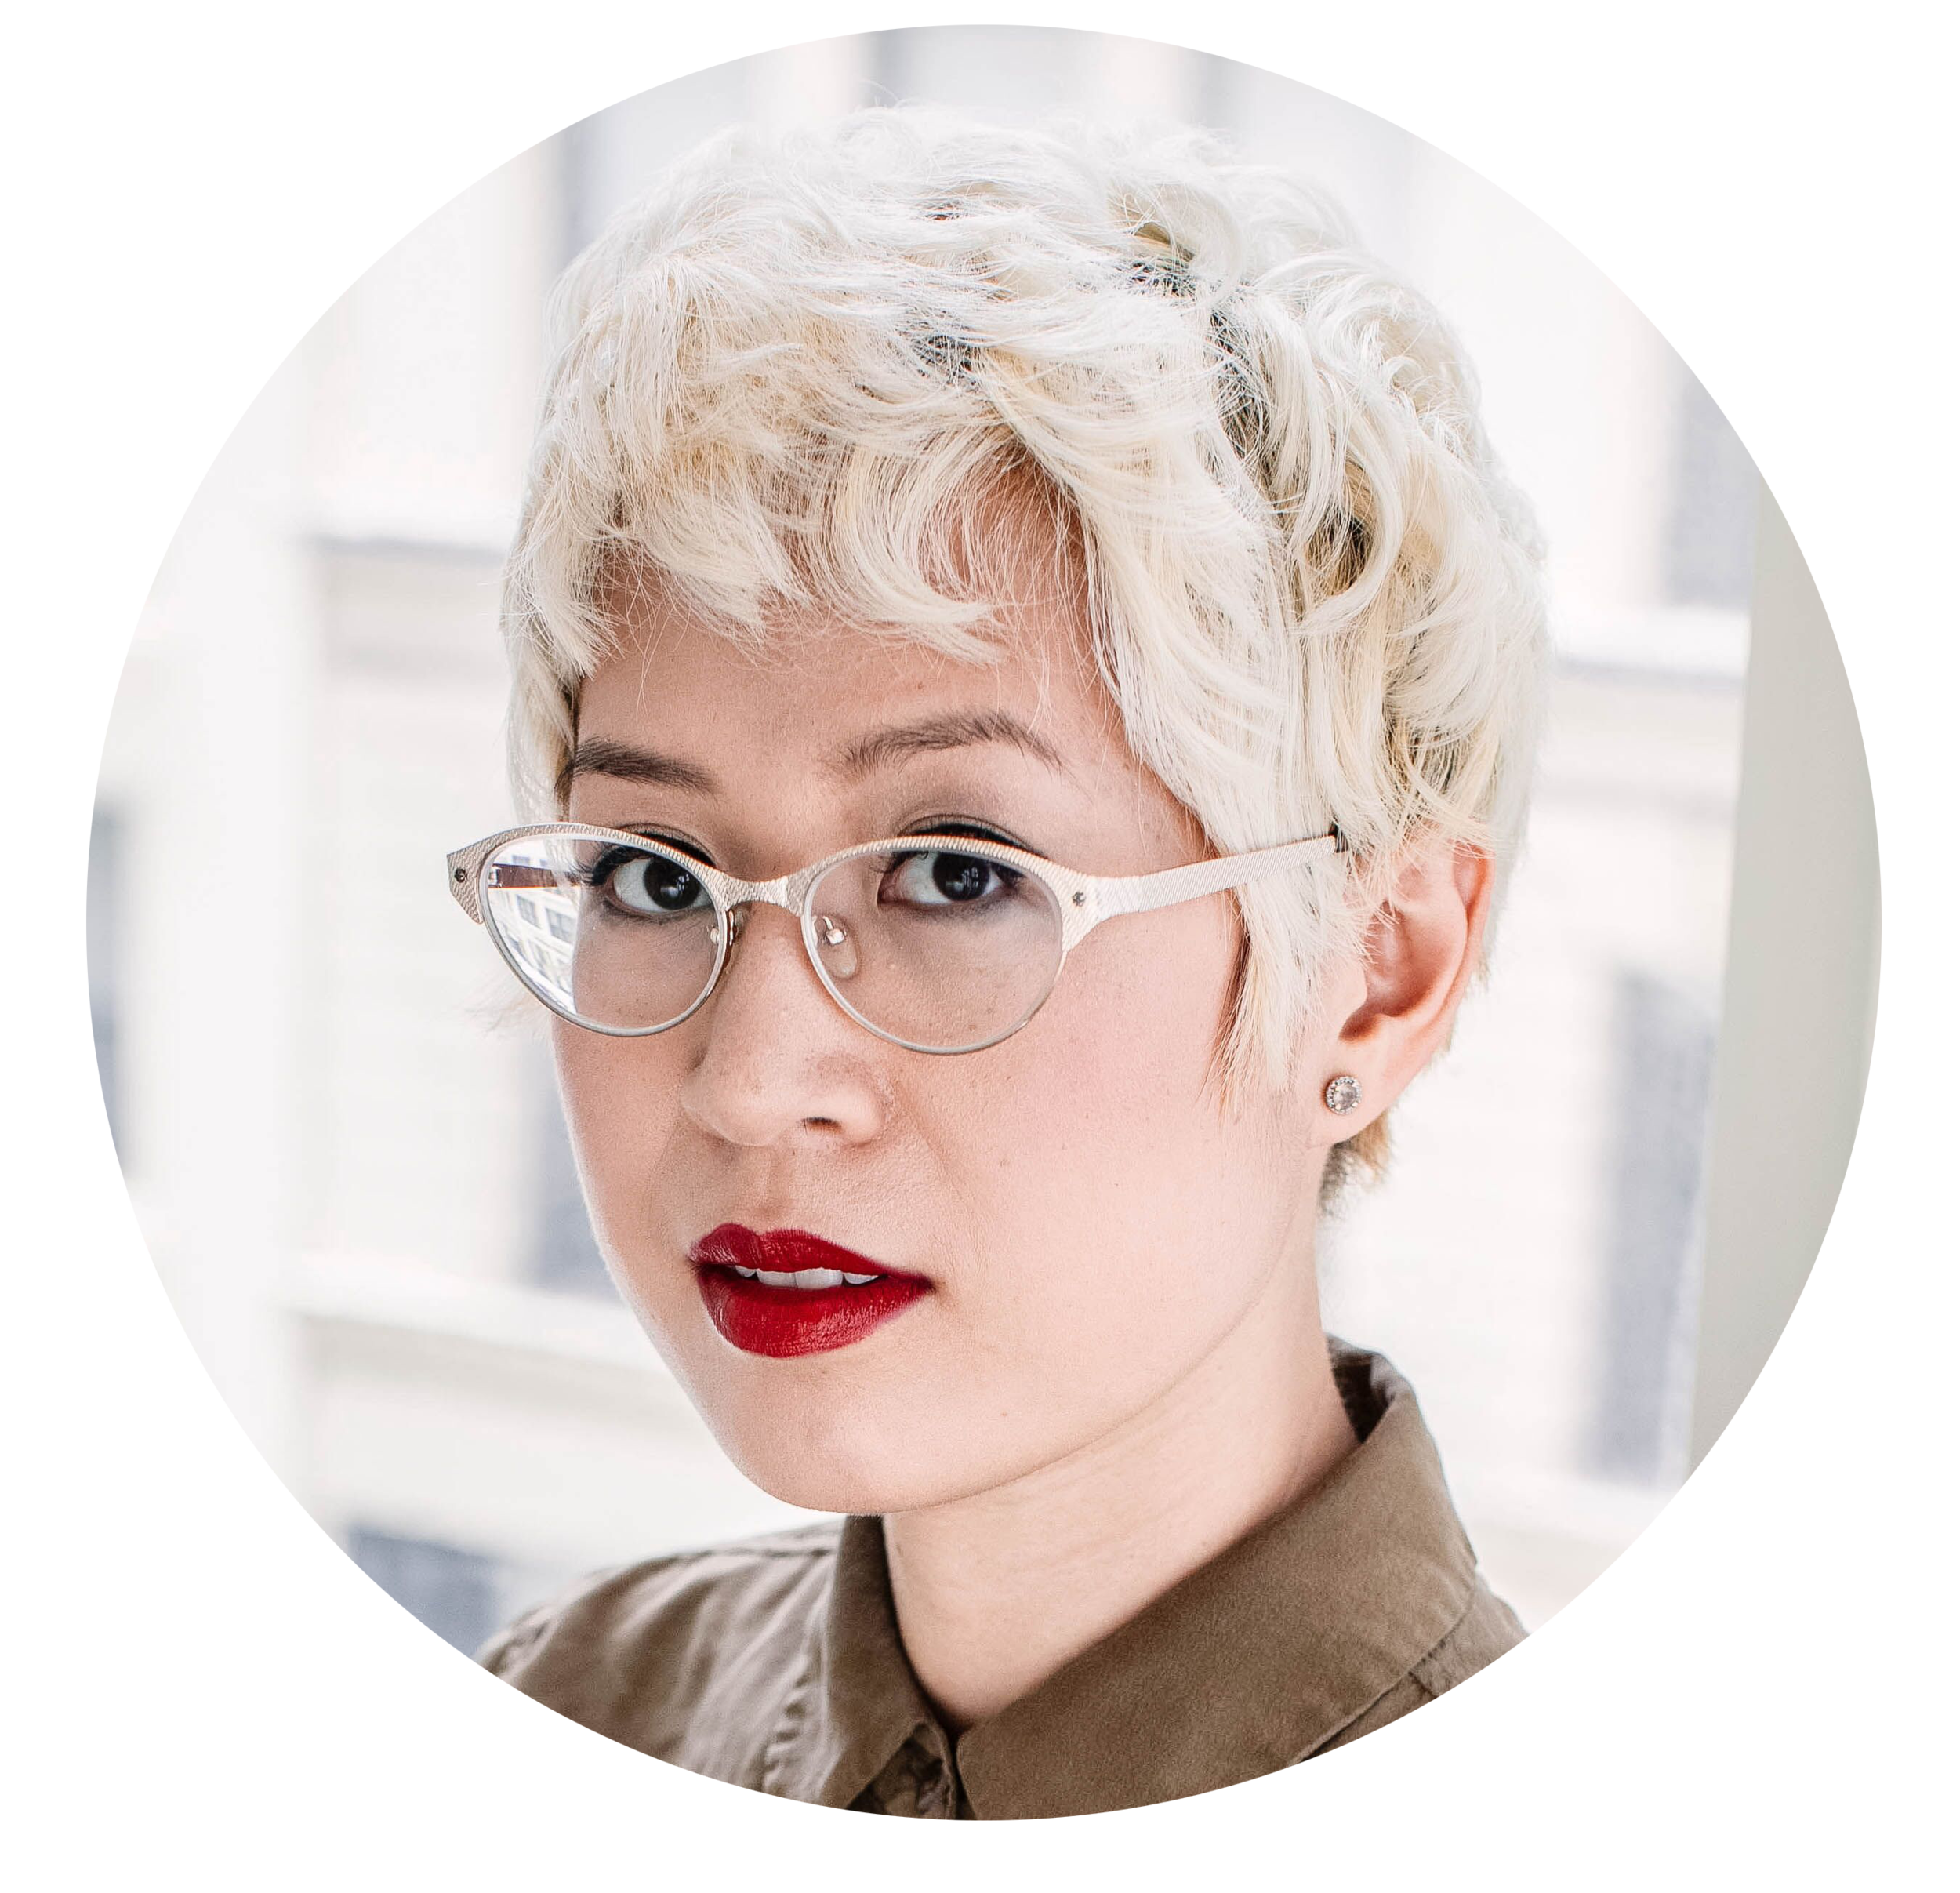 """Esmé Wiejun Wang - Esmé Weijun Wang is the author of the New York Times-bestselling essay collection The Collected Schizophrenias and the novel The Border of Paradise, which was one of NPR's Best Books of 2016. She received a 2018 Whiting Award, was named by Granta as one of the """"Best of Young American Novelists"""" in 2017, and was the recipient of fellowships to Yaddo and the MacDowell Colony. Born in the Midwest to Taiwanese parents, Esmé lives in San Francisco, and can be found at esmewang.com and on Twitter @esmewang."""